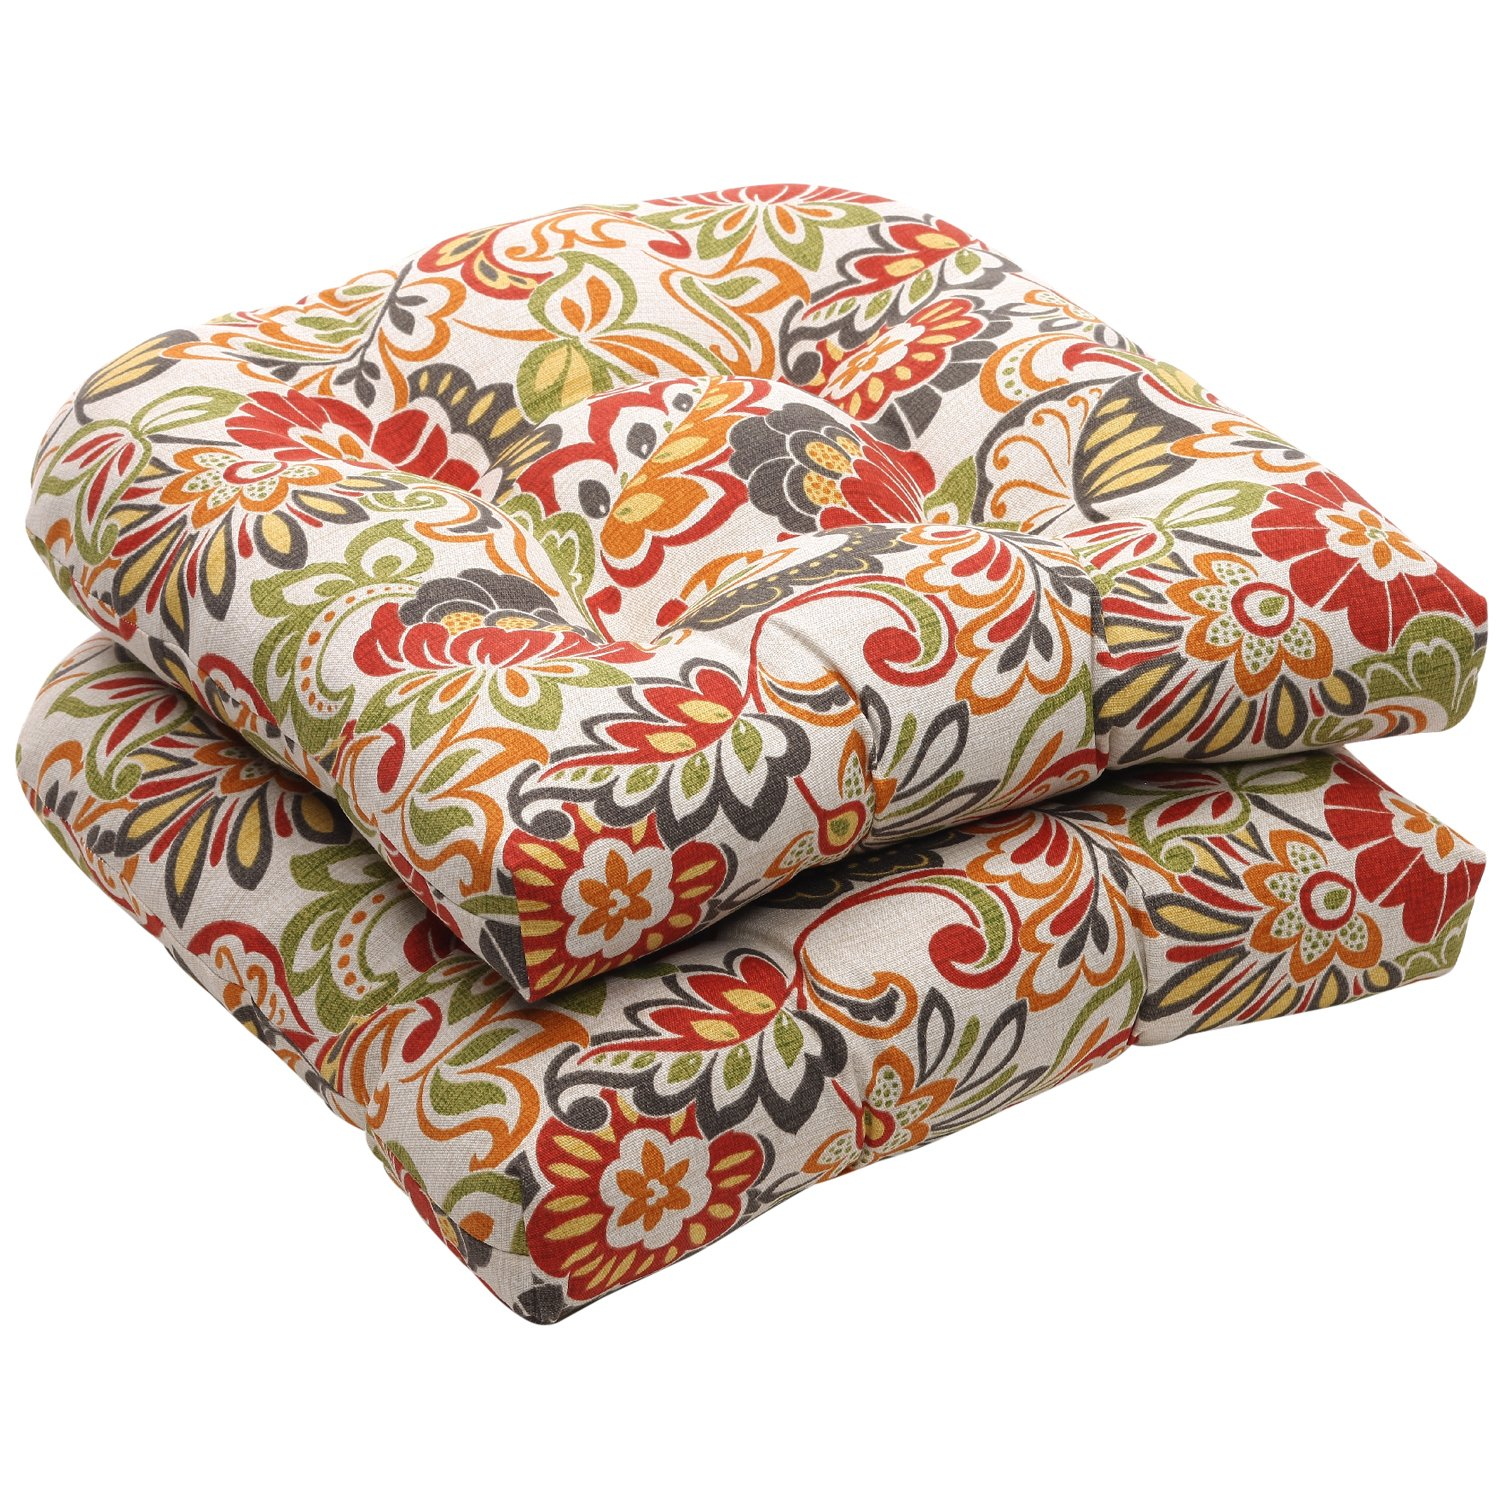 Pillow Chairs 2 Seat Cushion Pillow For Outdoor Patio Furniture Porch